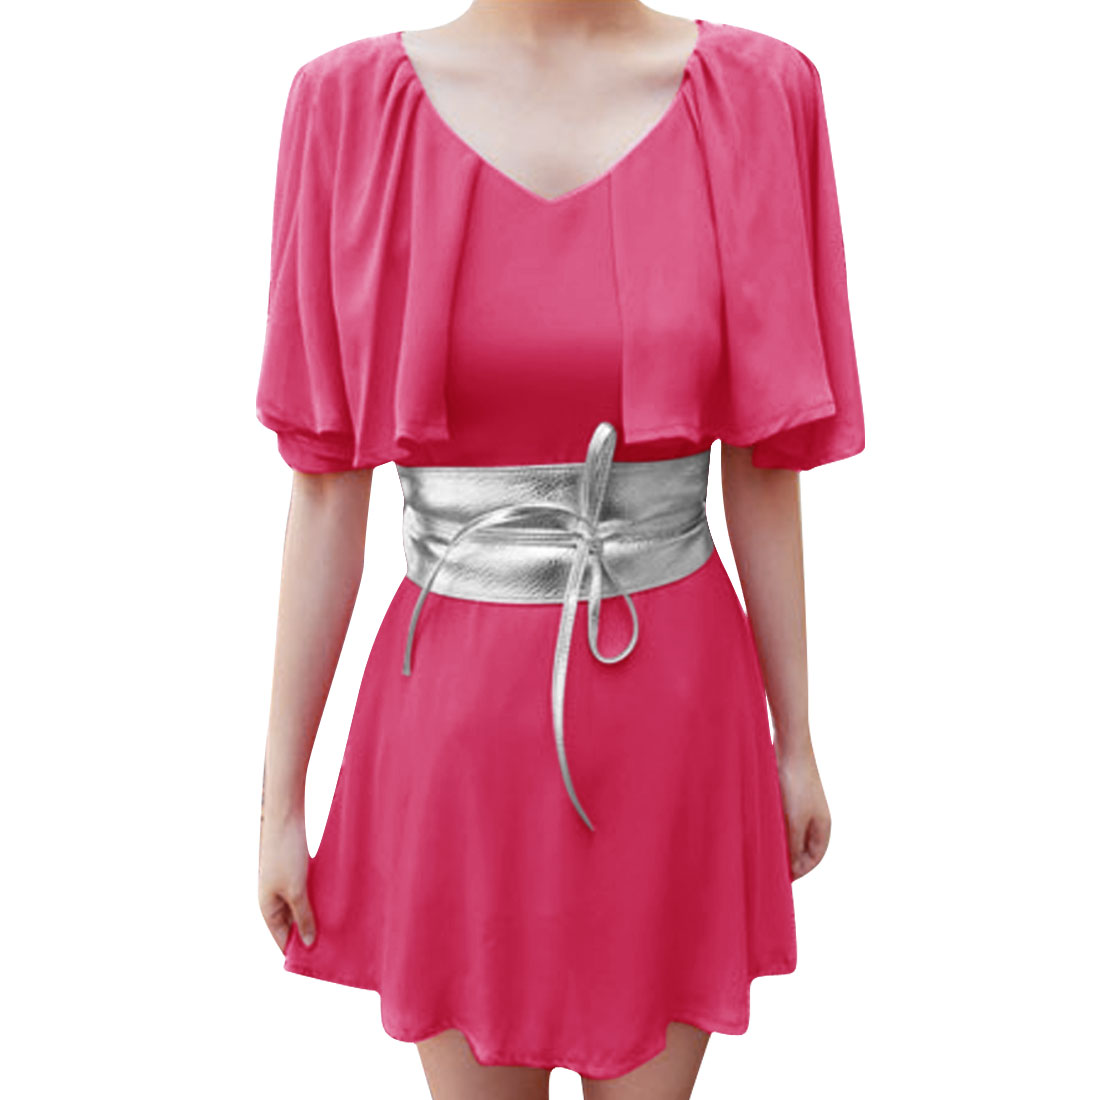 Women High Rise Butterfly Sleeve Leisure Dress Fuchsia XS